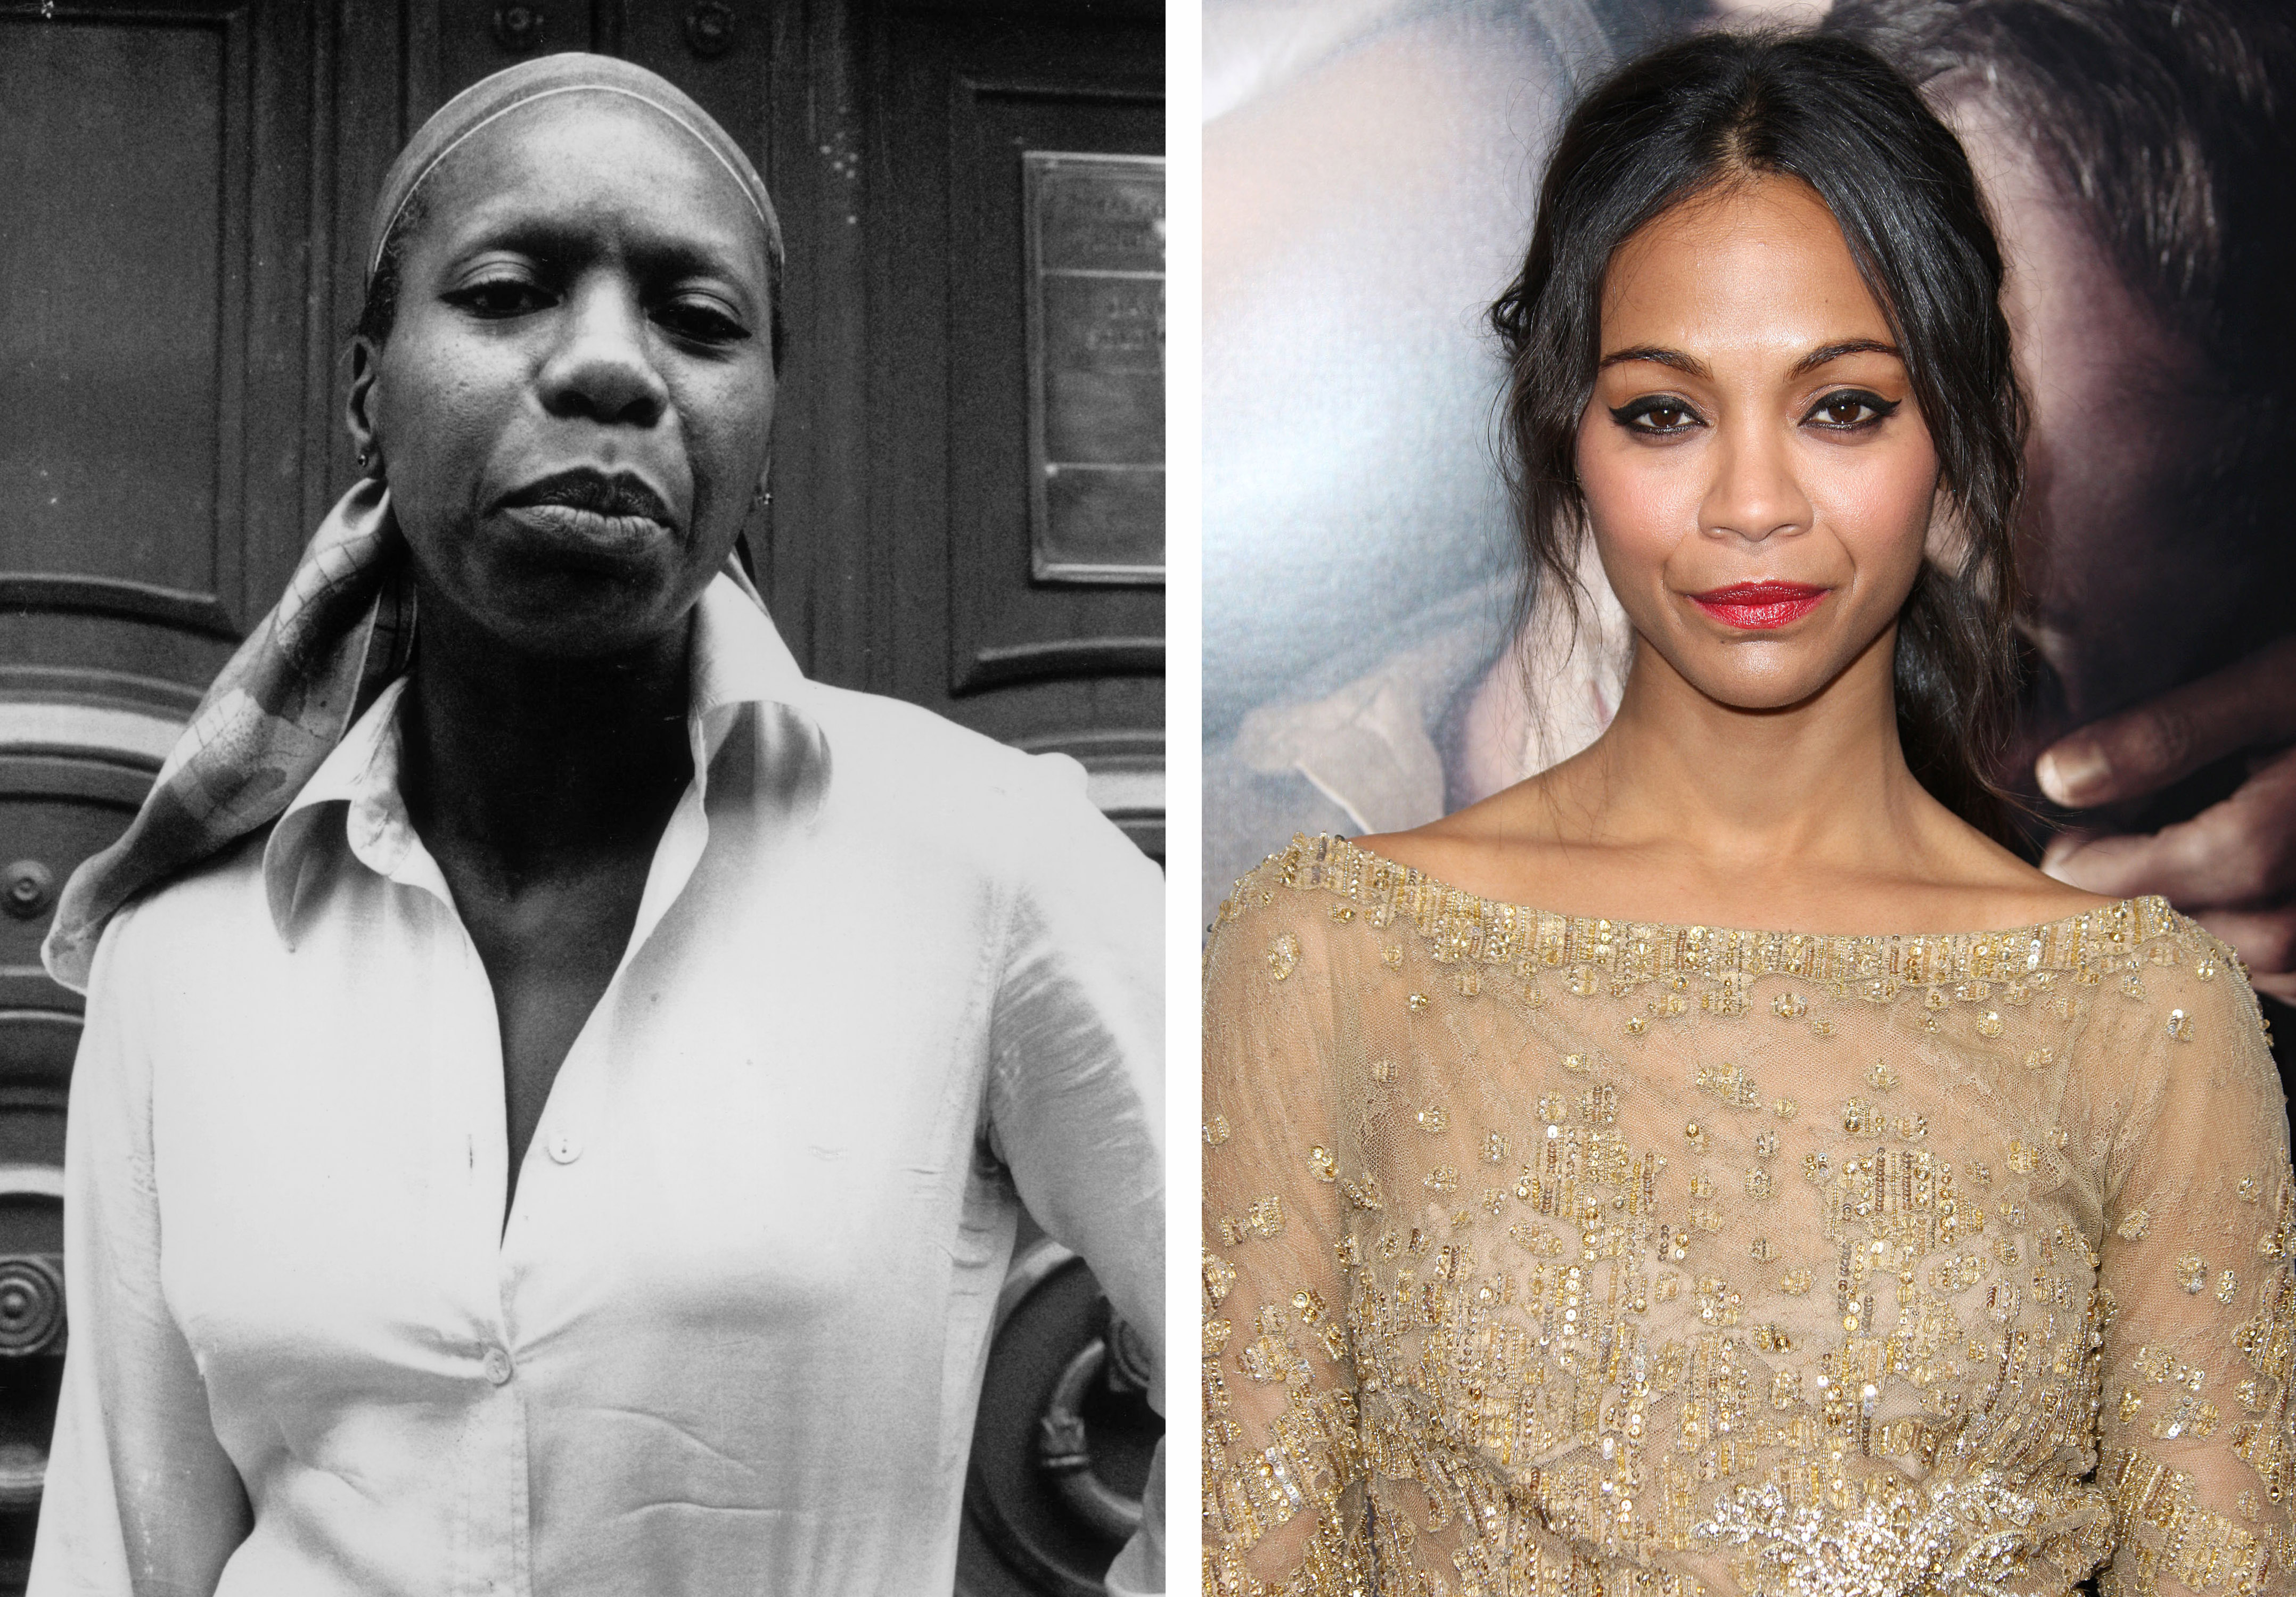 A composite of images of musician Nina Simone (L) and the actress chosen to portray her in a new biopic, Zoe Saldana.